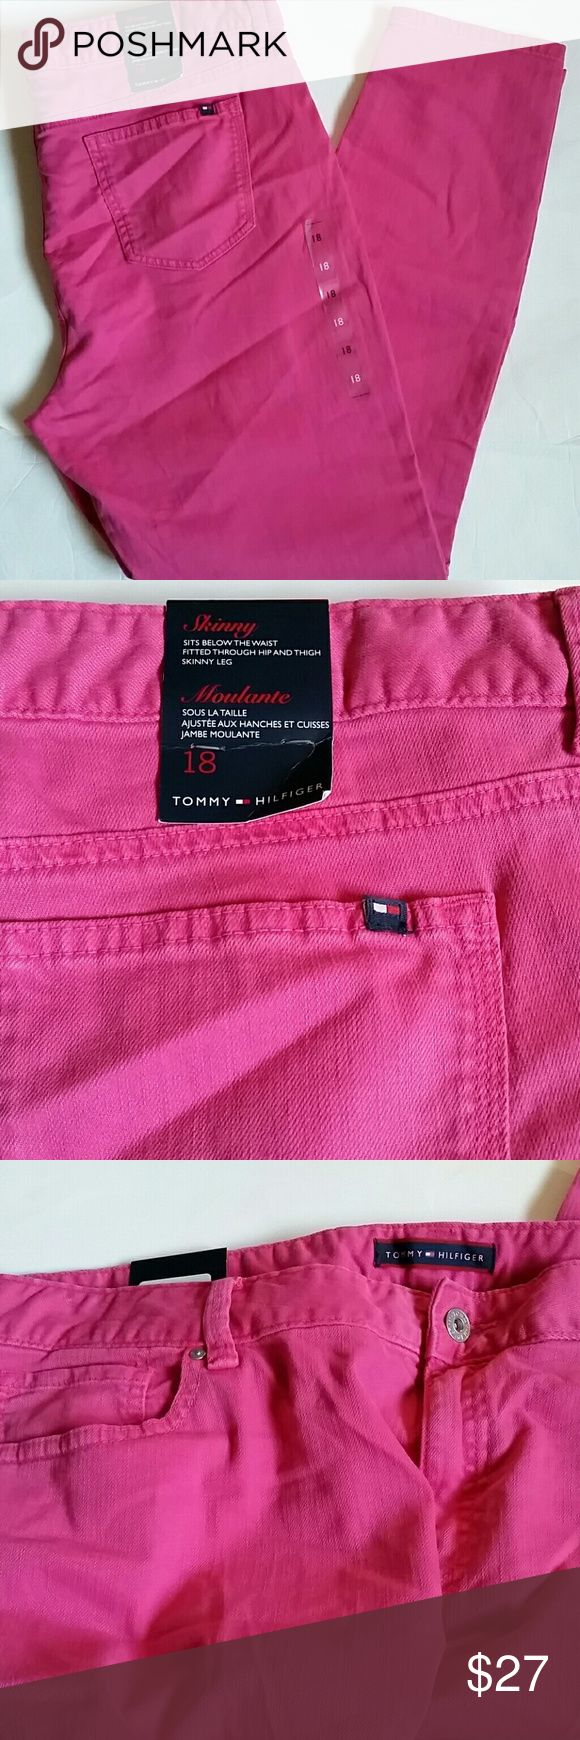 Tommy Hilfiger women pink jeans skinny 18 New with tags, skinny  Hot pink color 39 inches waist  29 inches inseam  I do have bundle discount, other than that all prices are firm!  No low ball offers please Tommy Hilfiger Jeans Skinny